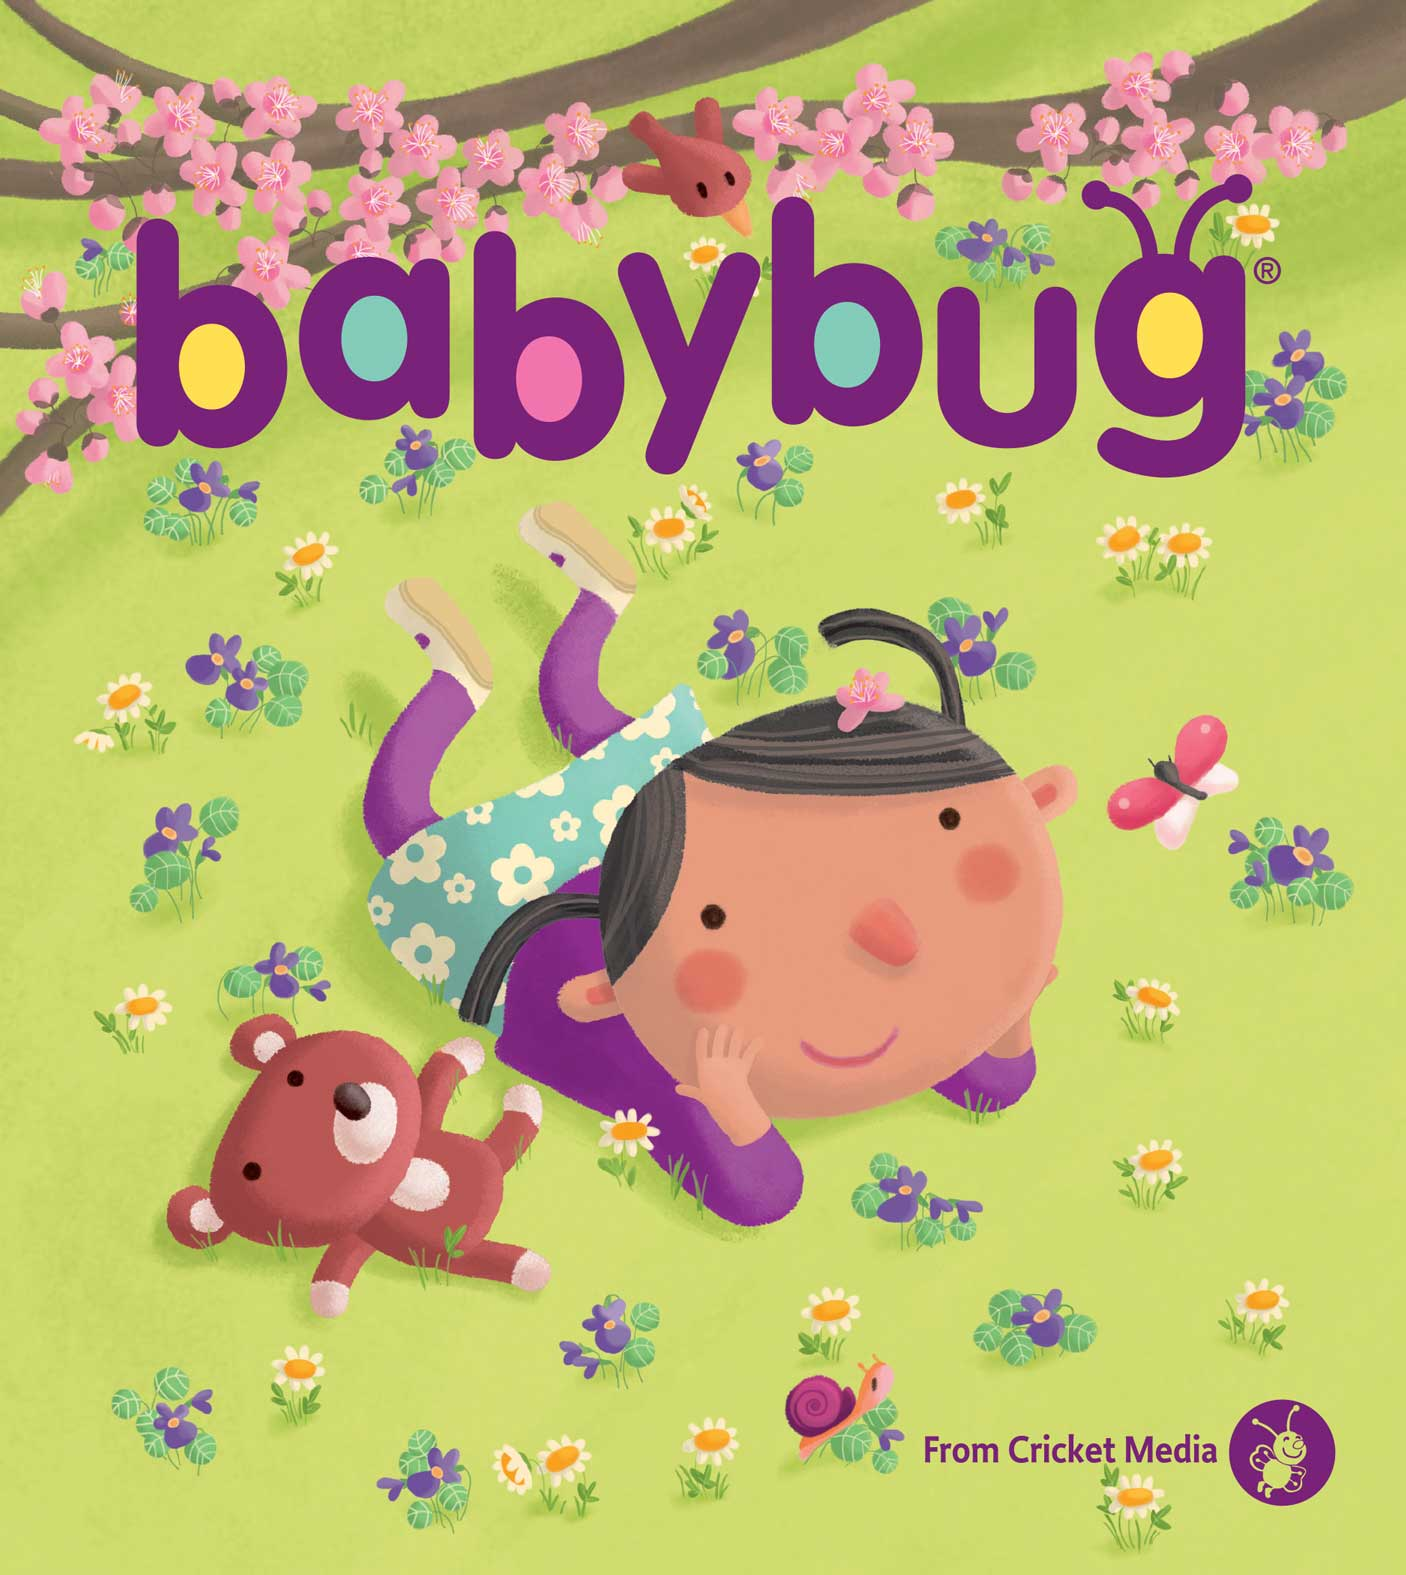 Cricket Media | BABYBUG Magazine April 2017 ISSUE